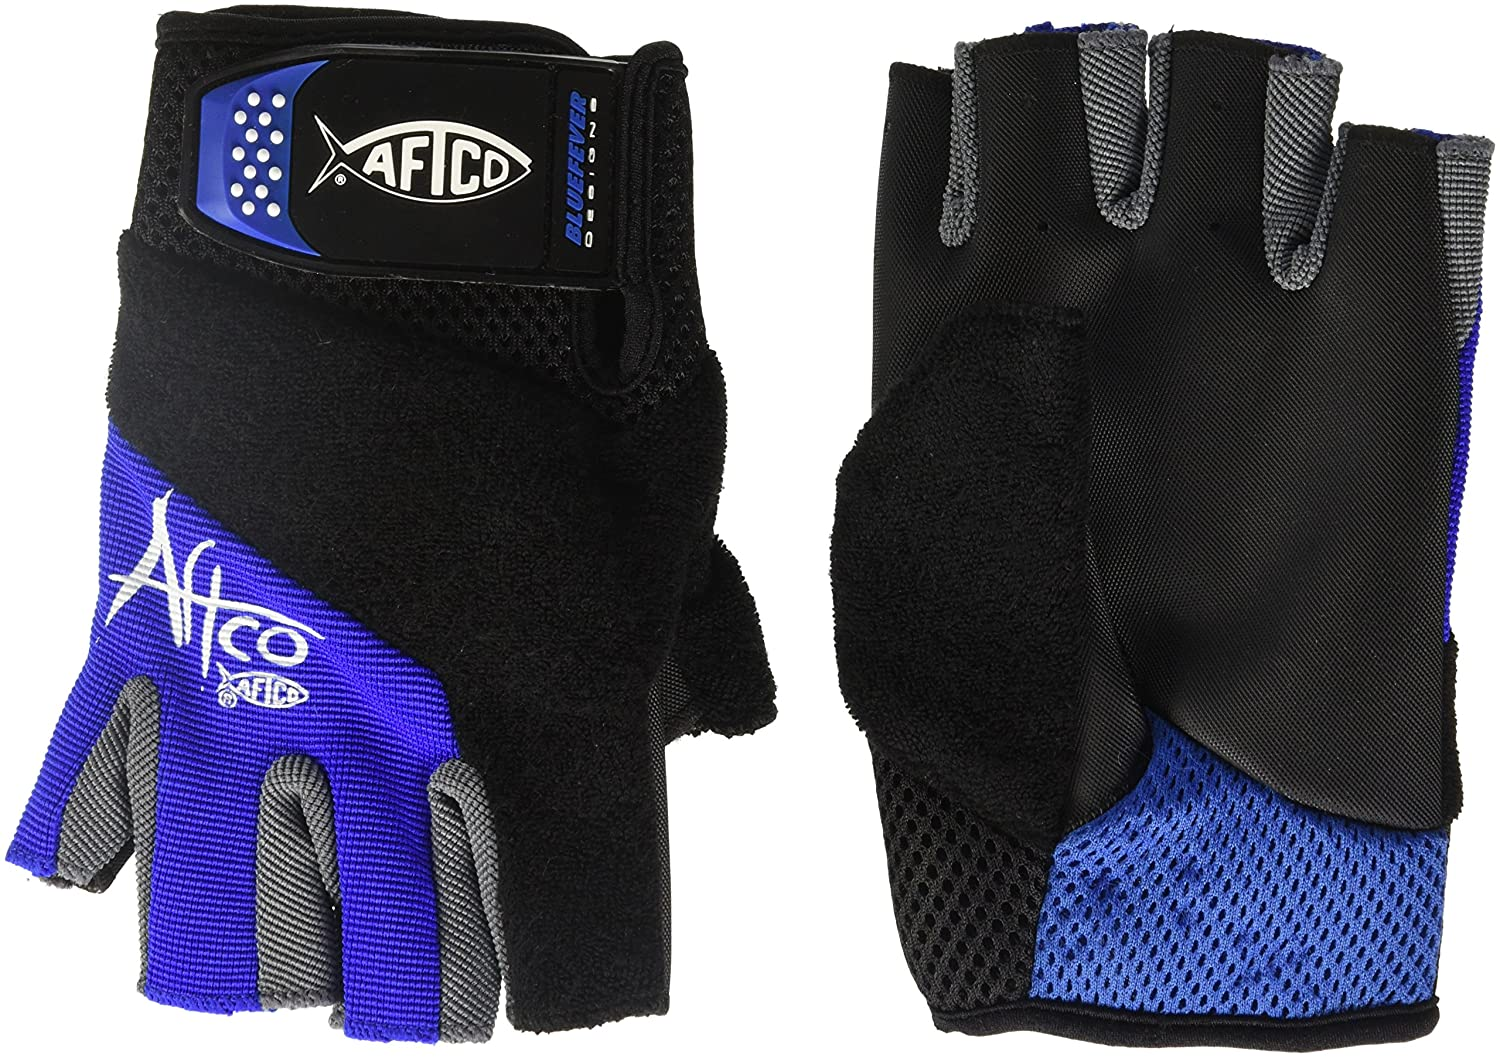 fac8e7d35 Amazon.com   AFTCO Short Pump Fishing Gloves   Fishing Gloves   Sports    Outdoors